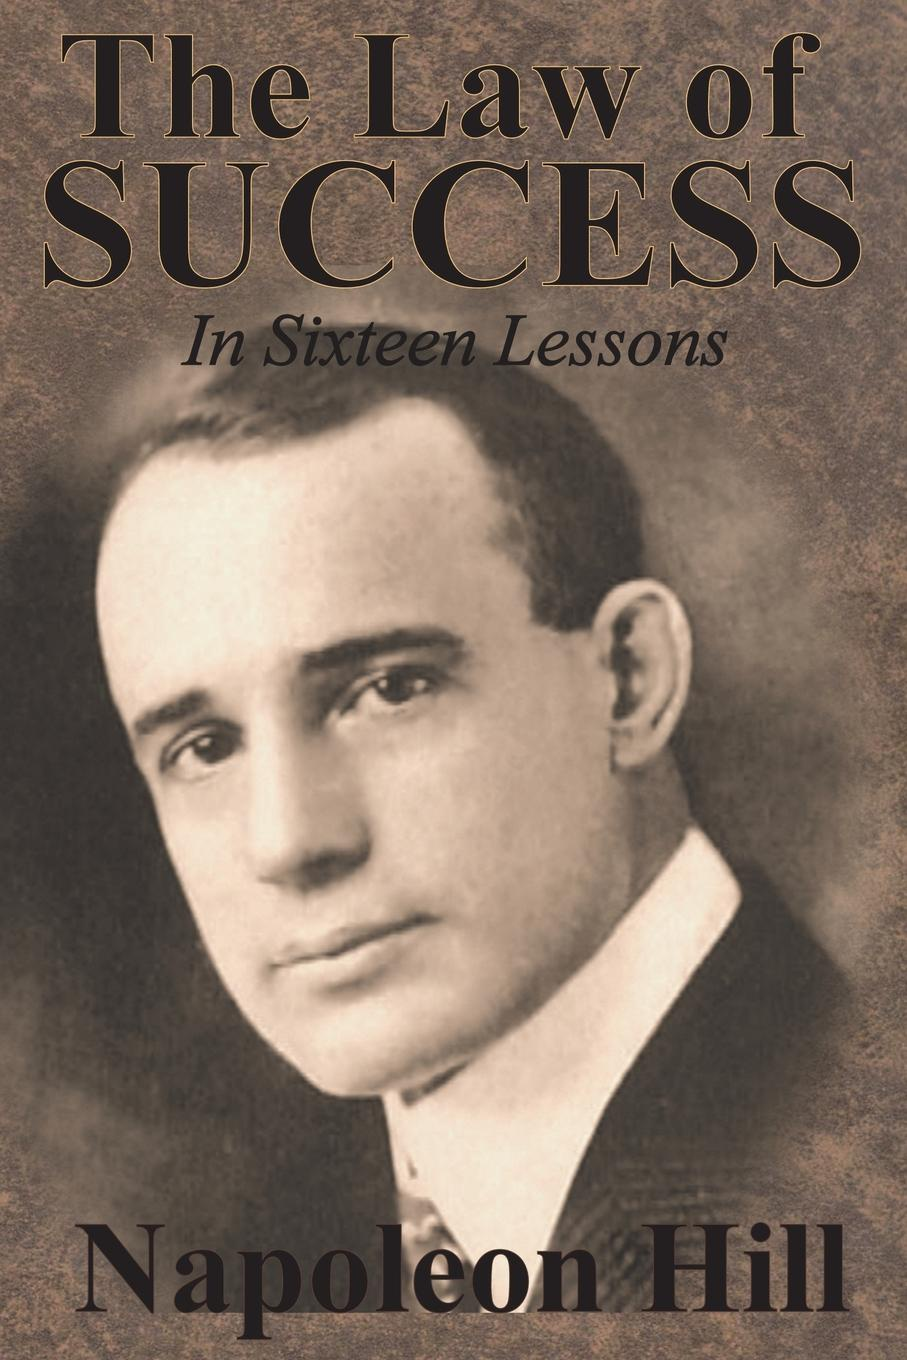 Napoleon Hill The Law of Success In Sixteen Lessons by Napoleon Hill scott w life of napoleon volume 1